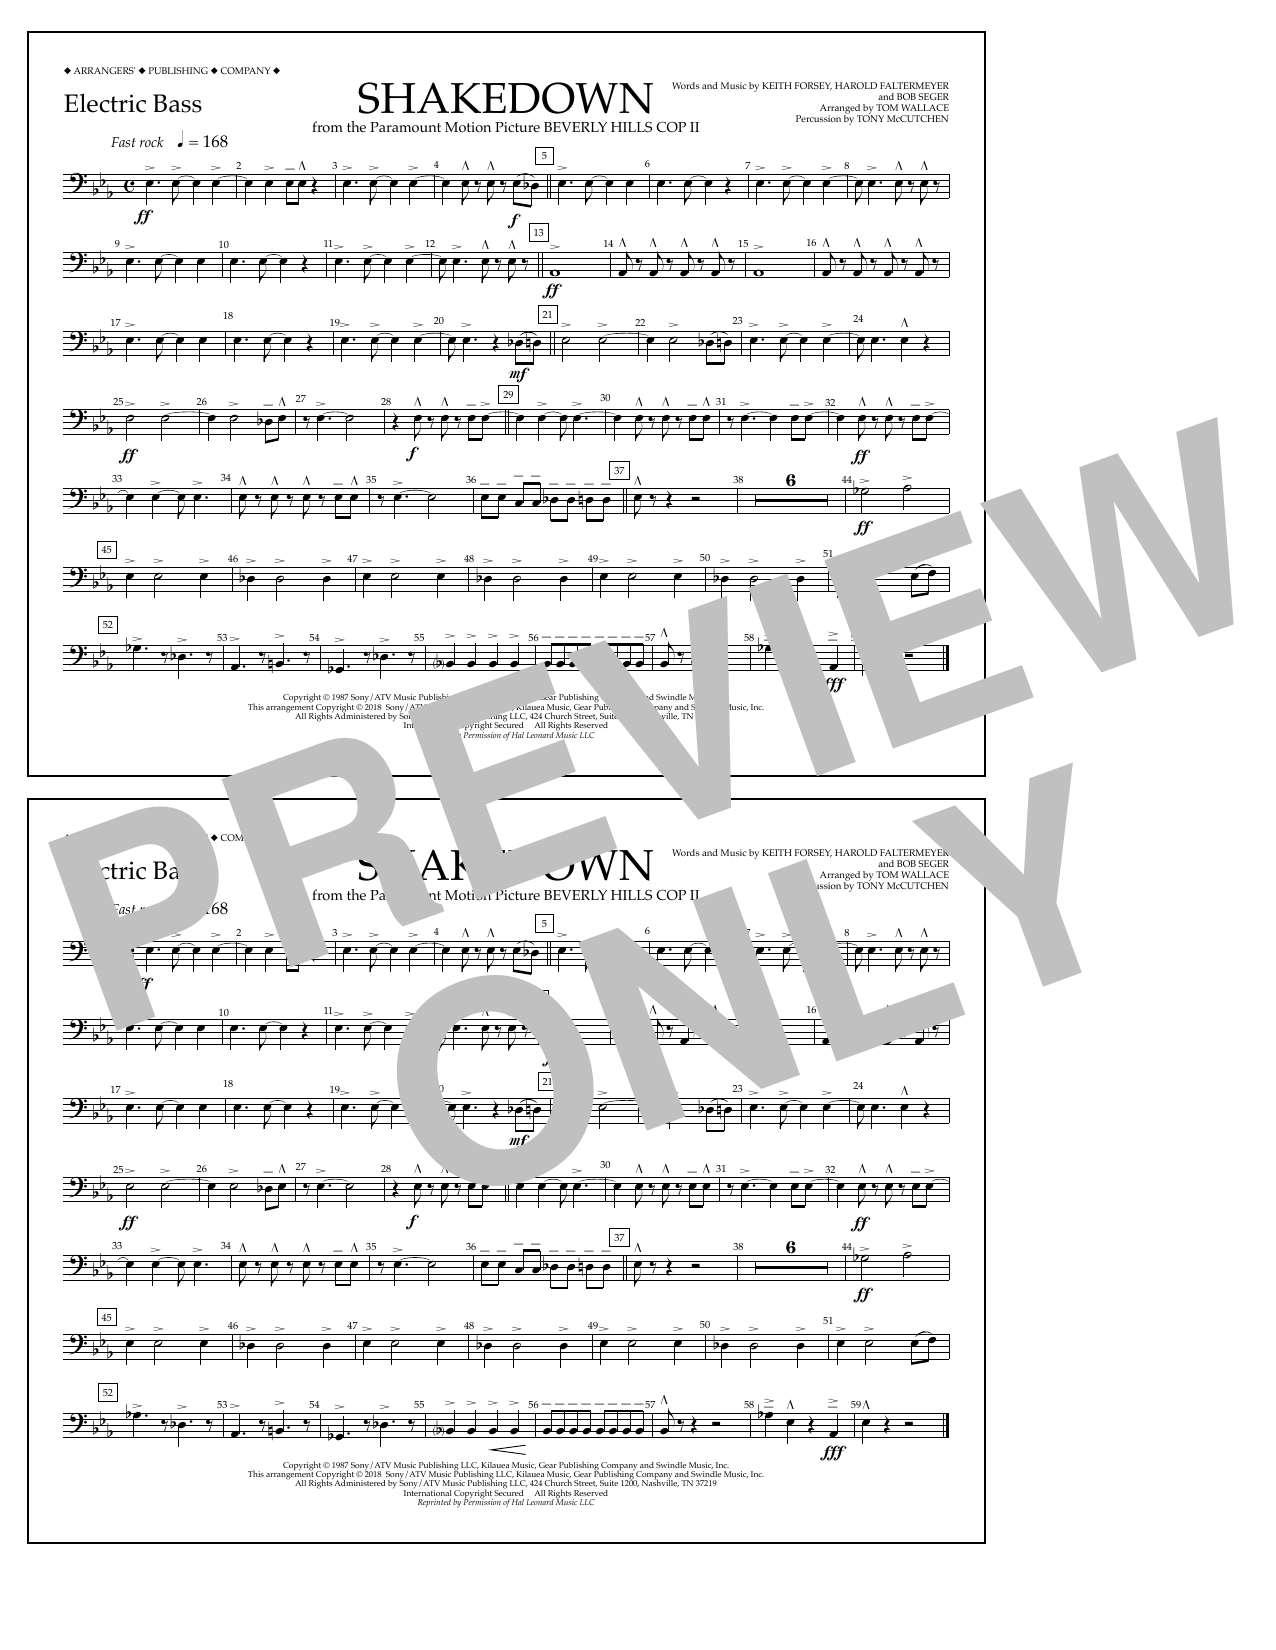 Tom Wallace Shakedown - Electric Bass sheet music notes and chords. Download Printable PDF.